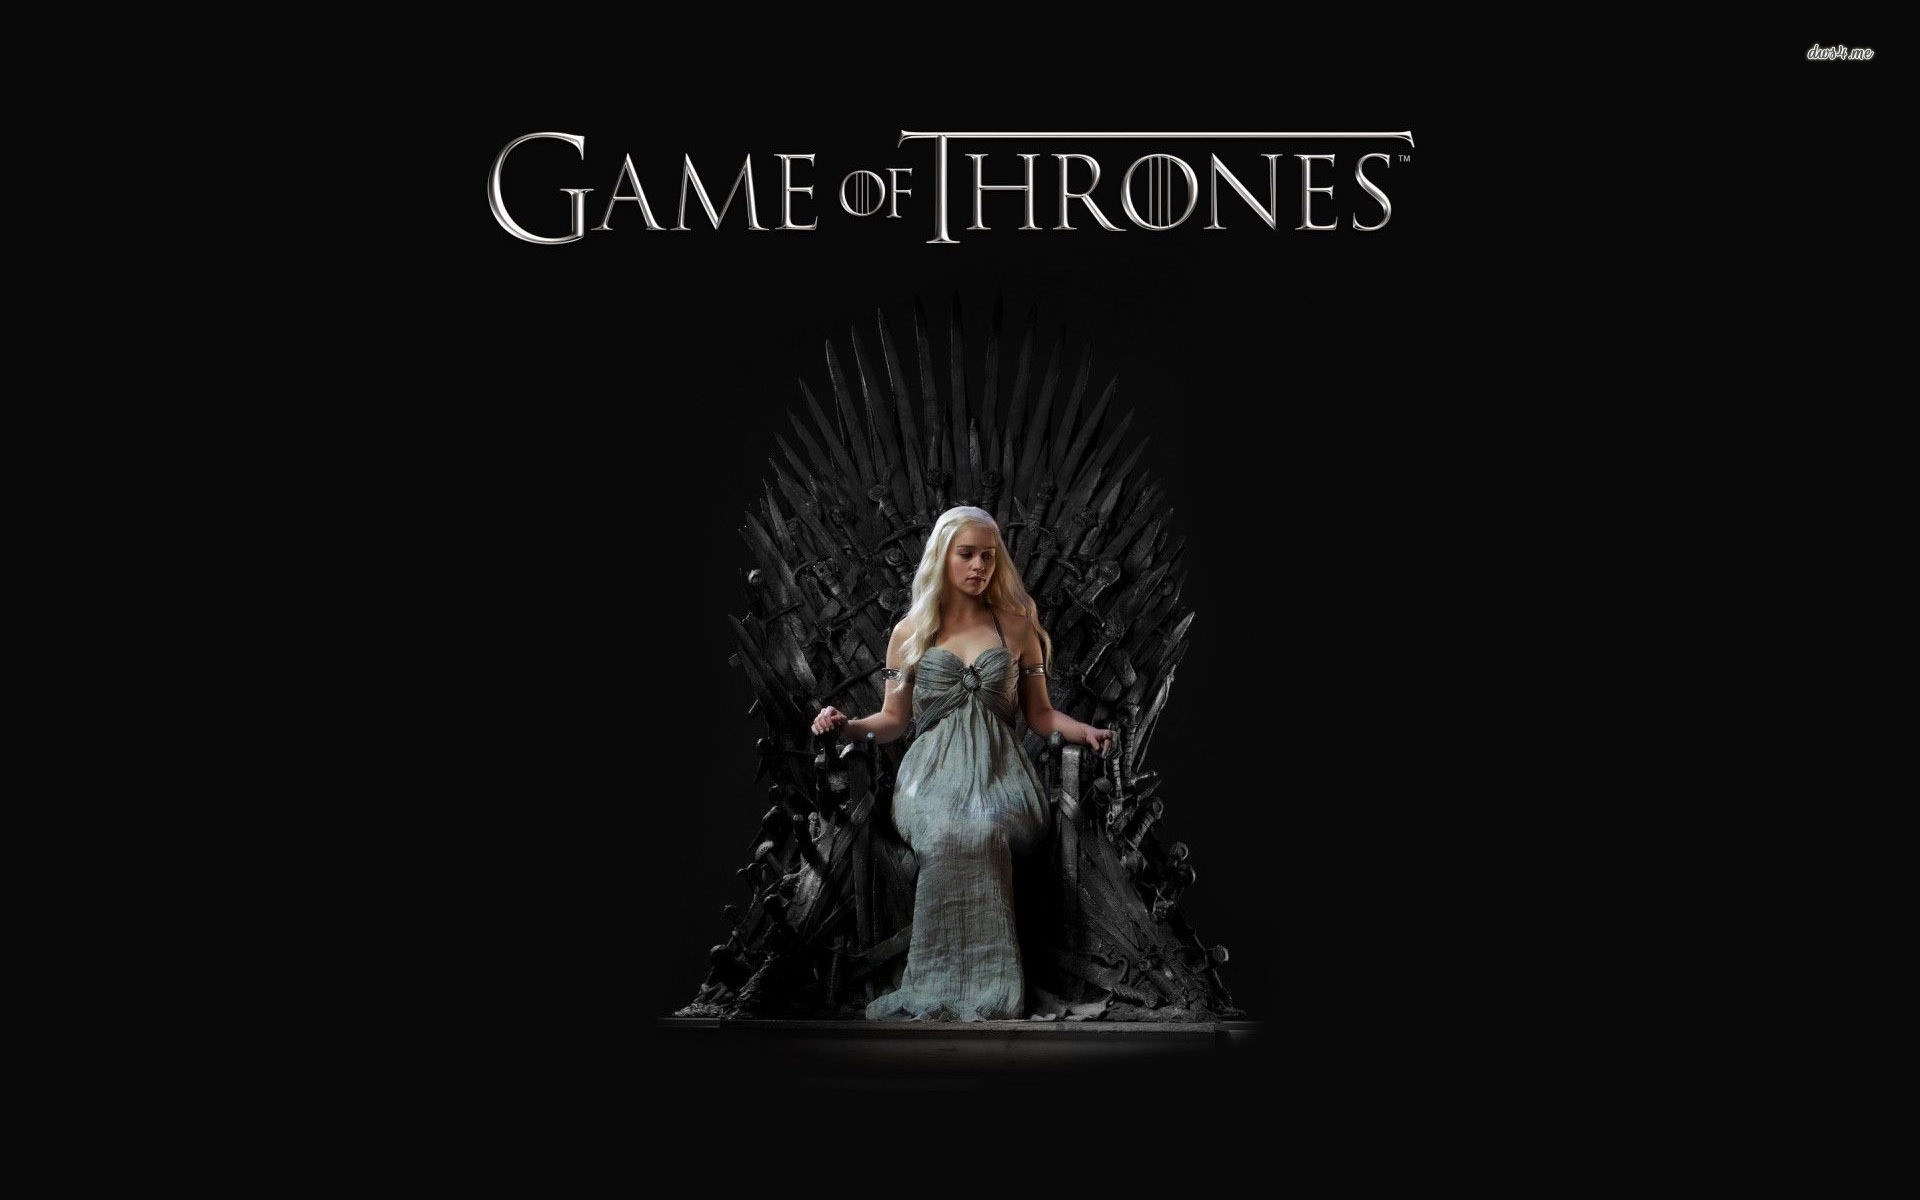 game of thrones screensaver, wallpaper engine wallpapers free download